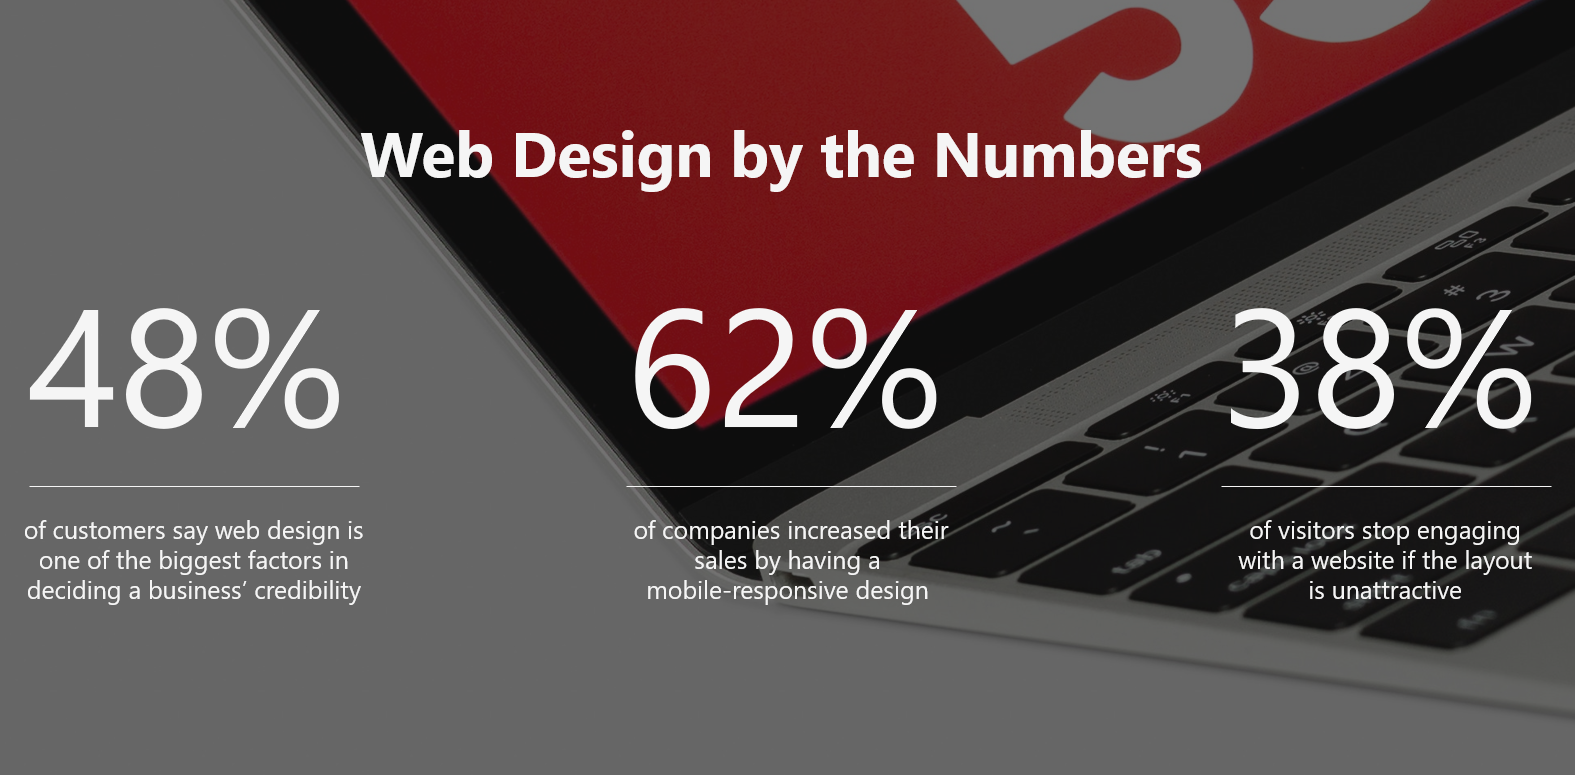 Web Design by numbers